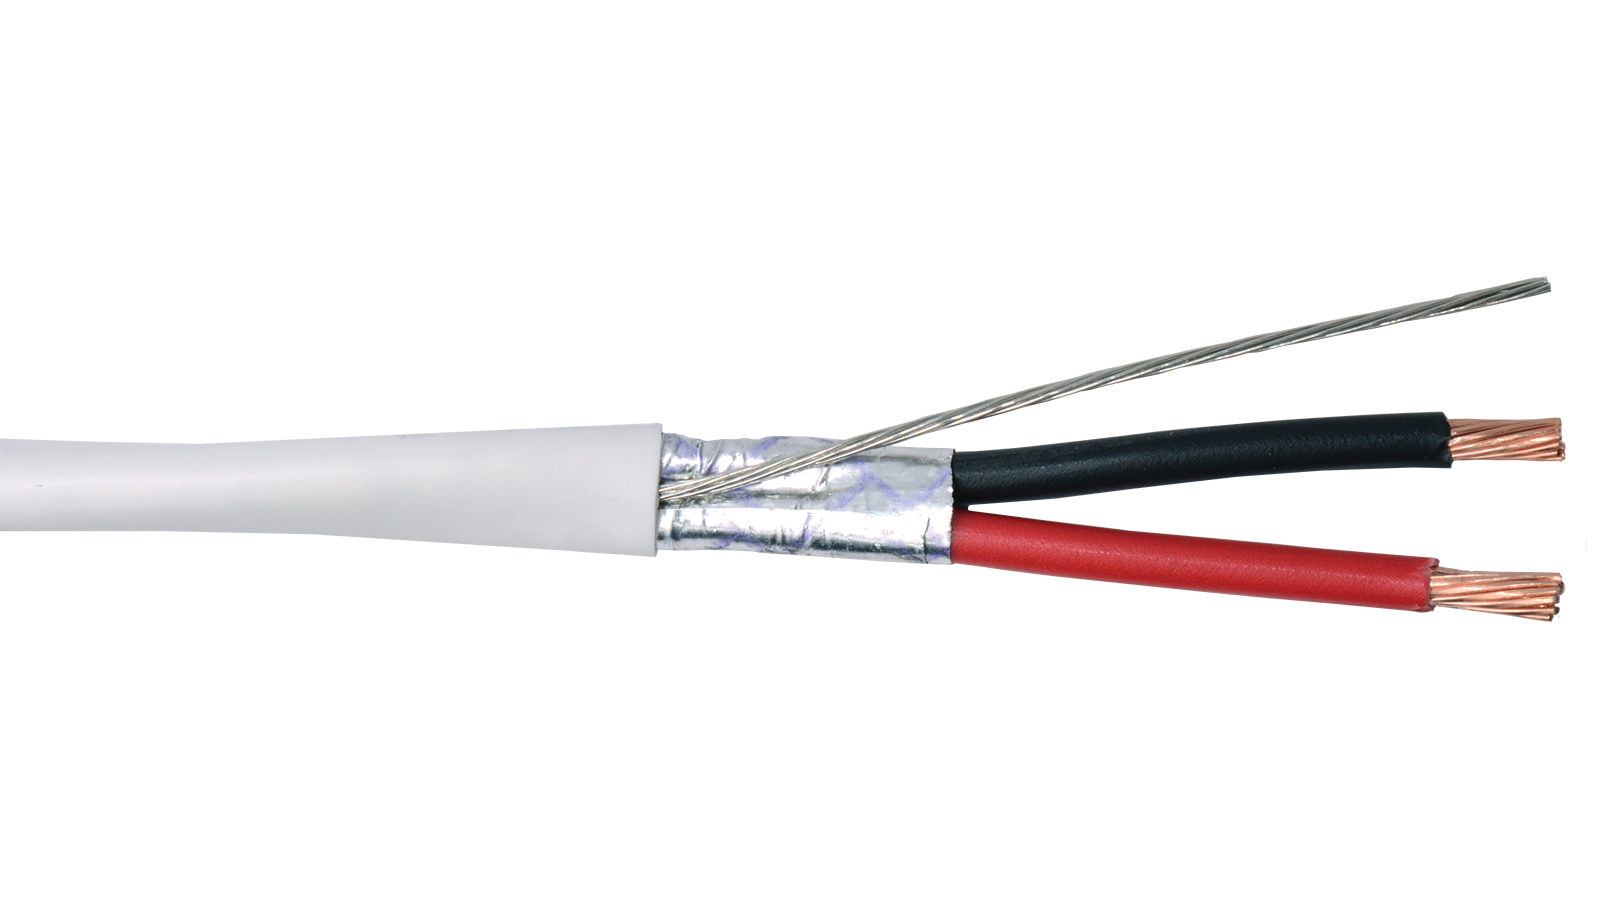 16 2c psh wht commercial grade general purpose 16 awg 2 commercial grade general purpose 16 awg 2 conductor plenum shielded cable